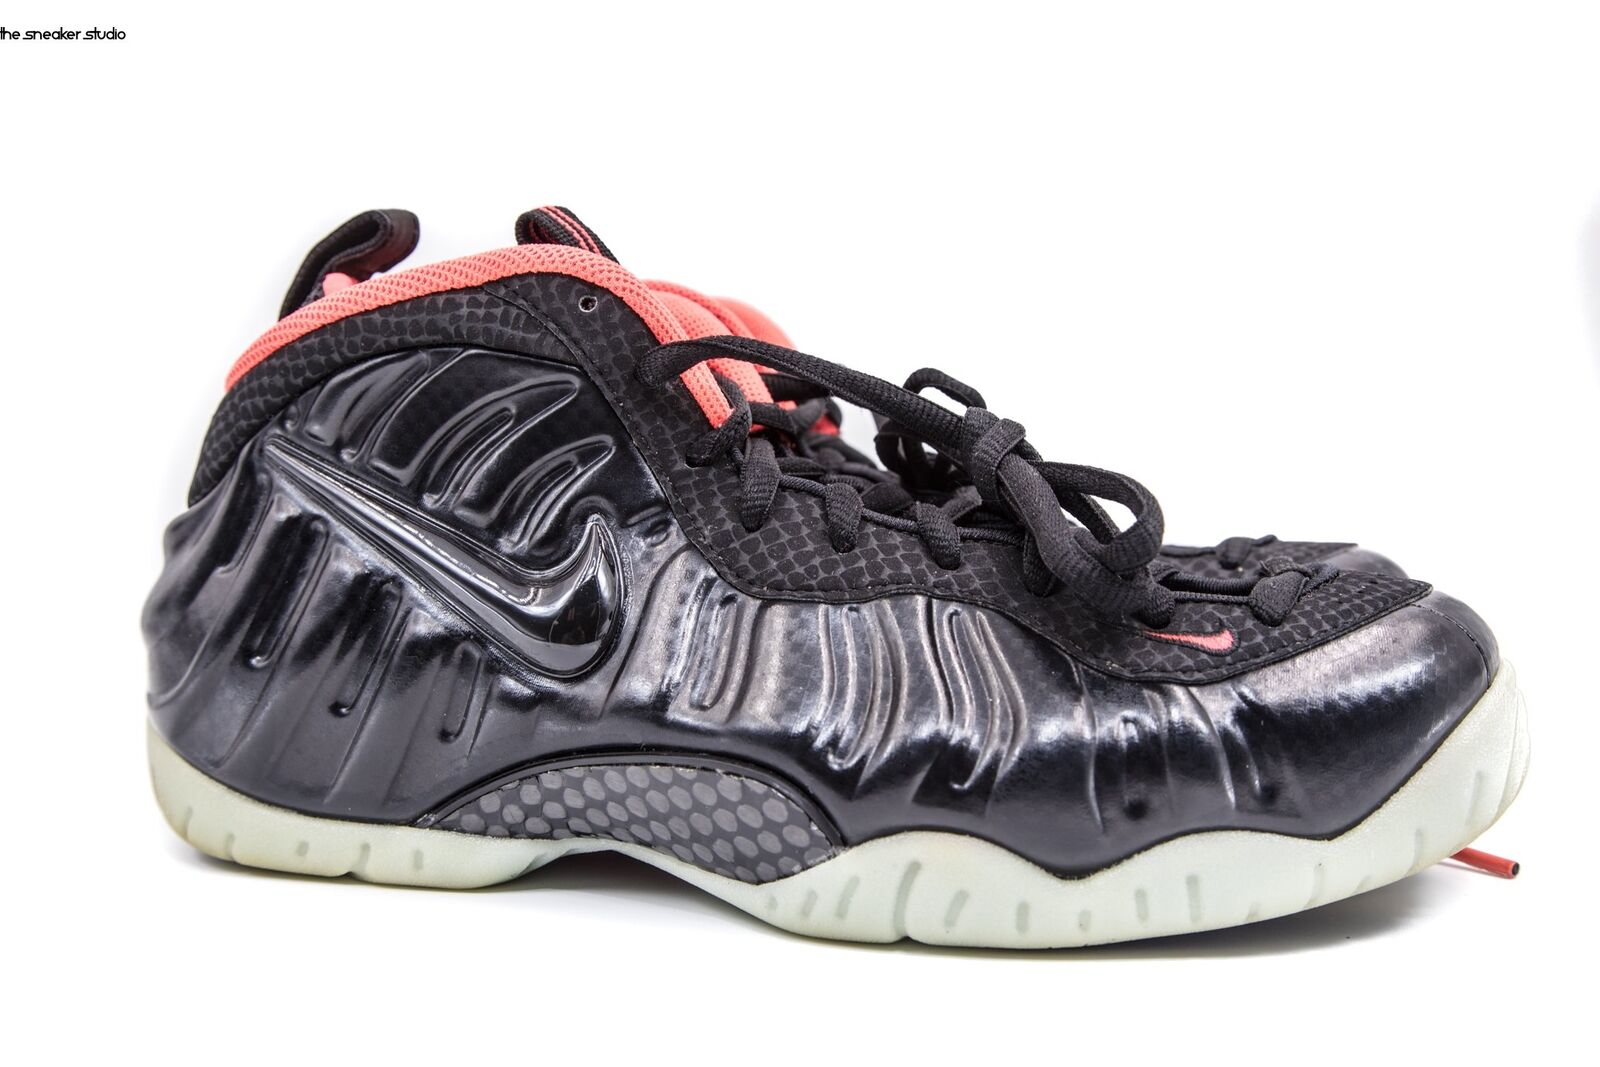 NIKE FOAMPOSITE YEEZY Price reduction Price reduction New shoes for men and women, limited time discount